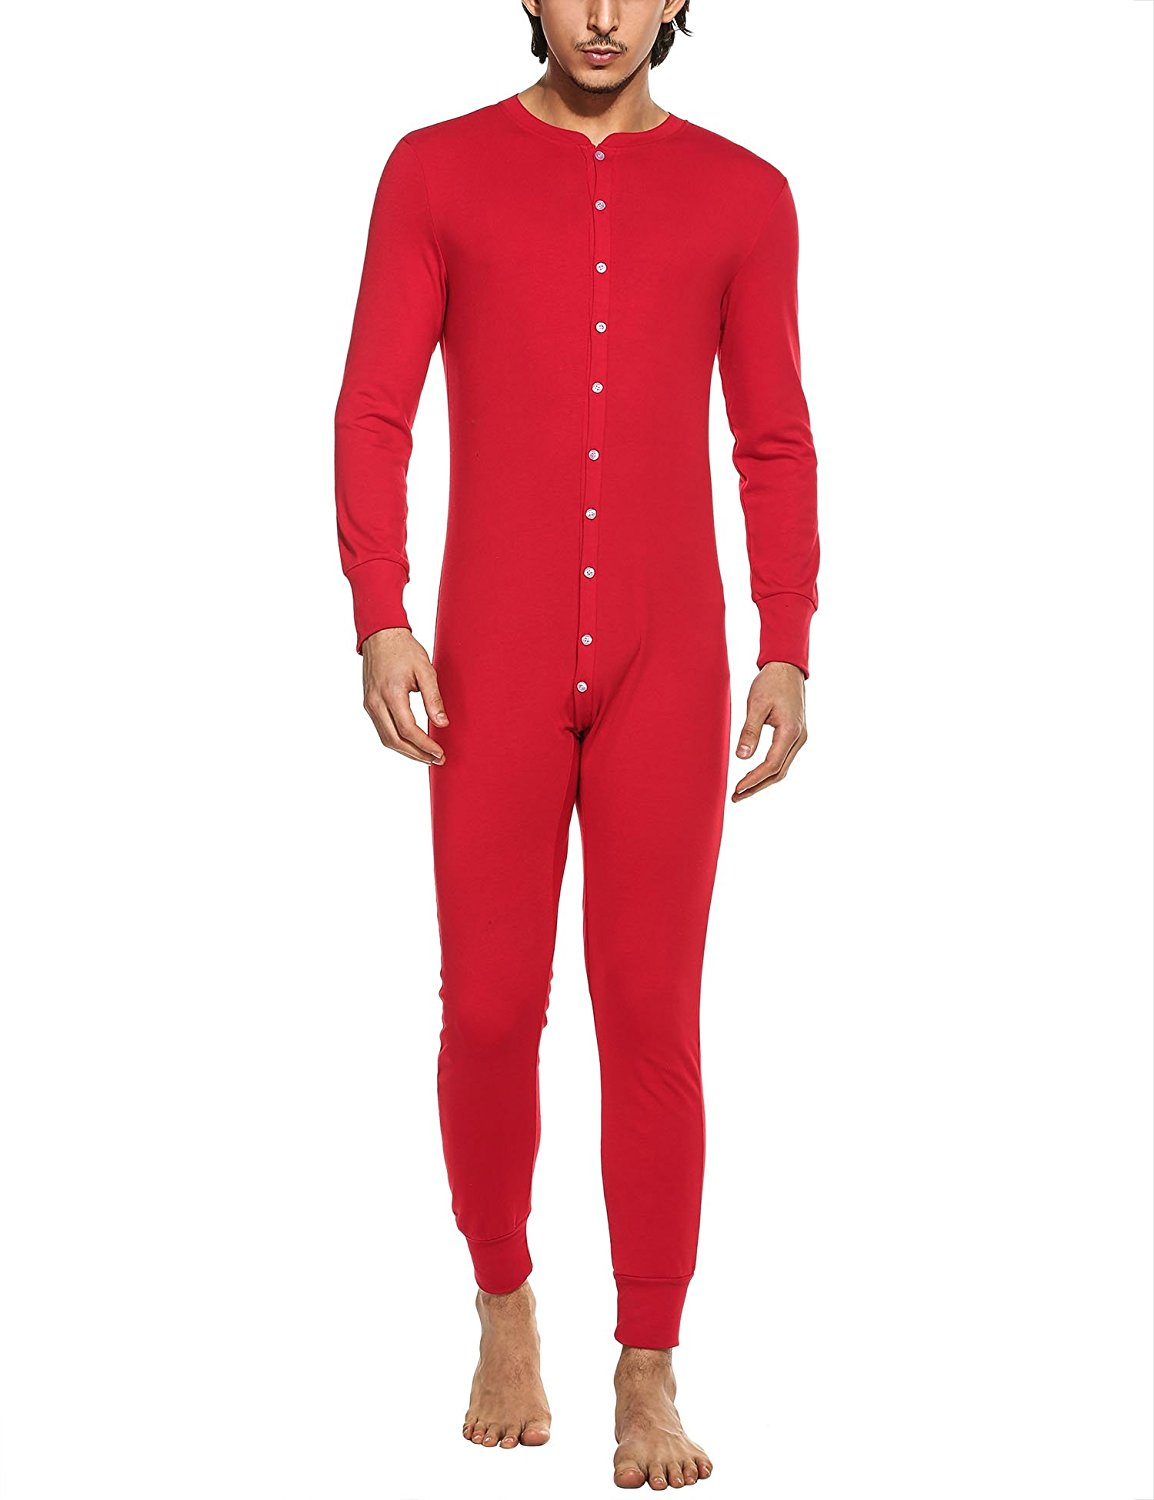 2ee031de3 Get Quotations · HOTOUCH Mens Thermal Union Suit Casual Round Neck Long  Sleeve Onesie Pajamas Solid Button Down Jumpsuit